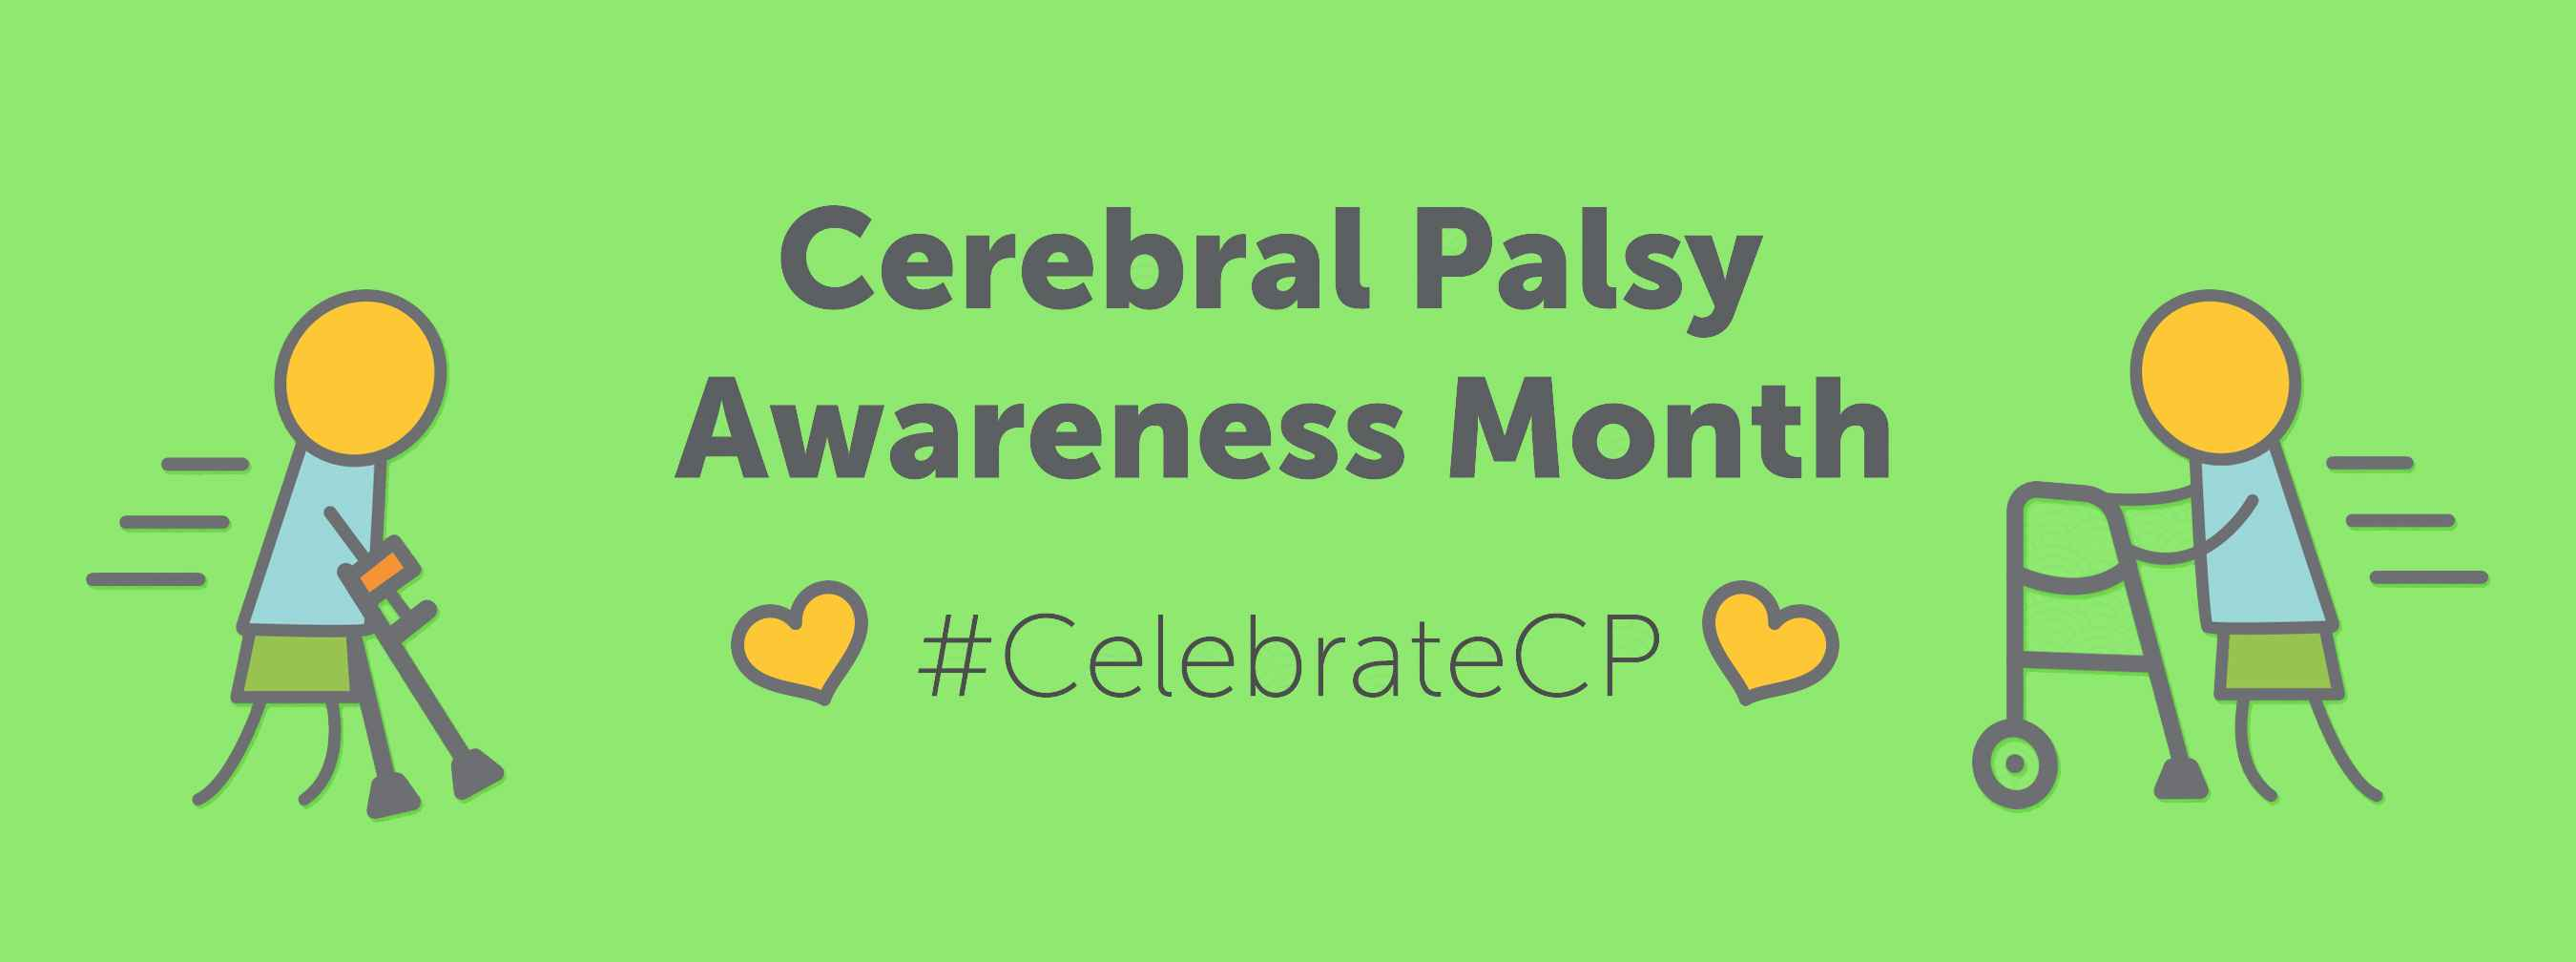 cerebral palsy awareness month march at gillette children's specialty healthcare